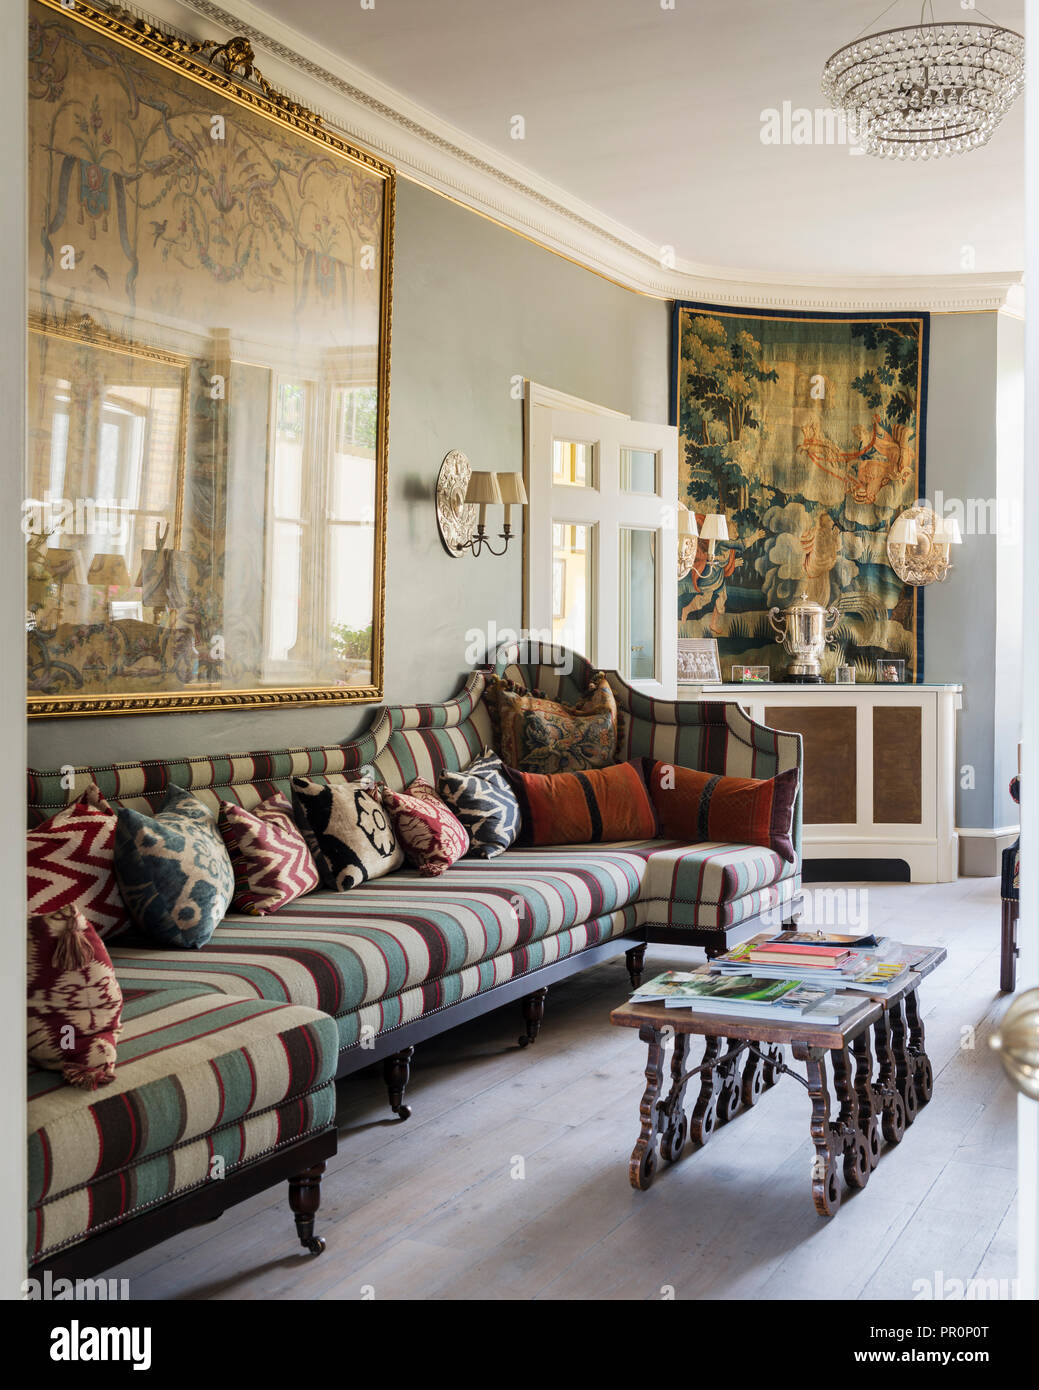 18th century French tapestry with banquette upholstered with Andrew Martin stripe - Stock Image